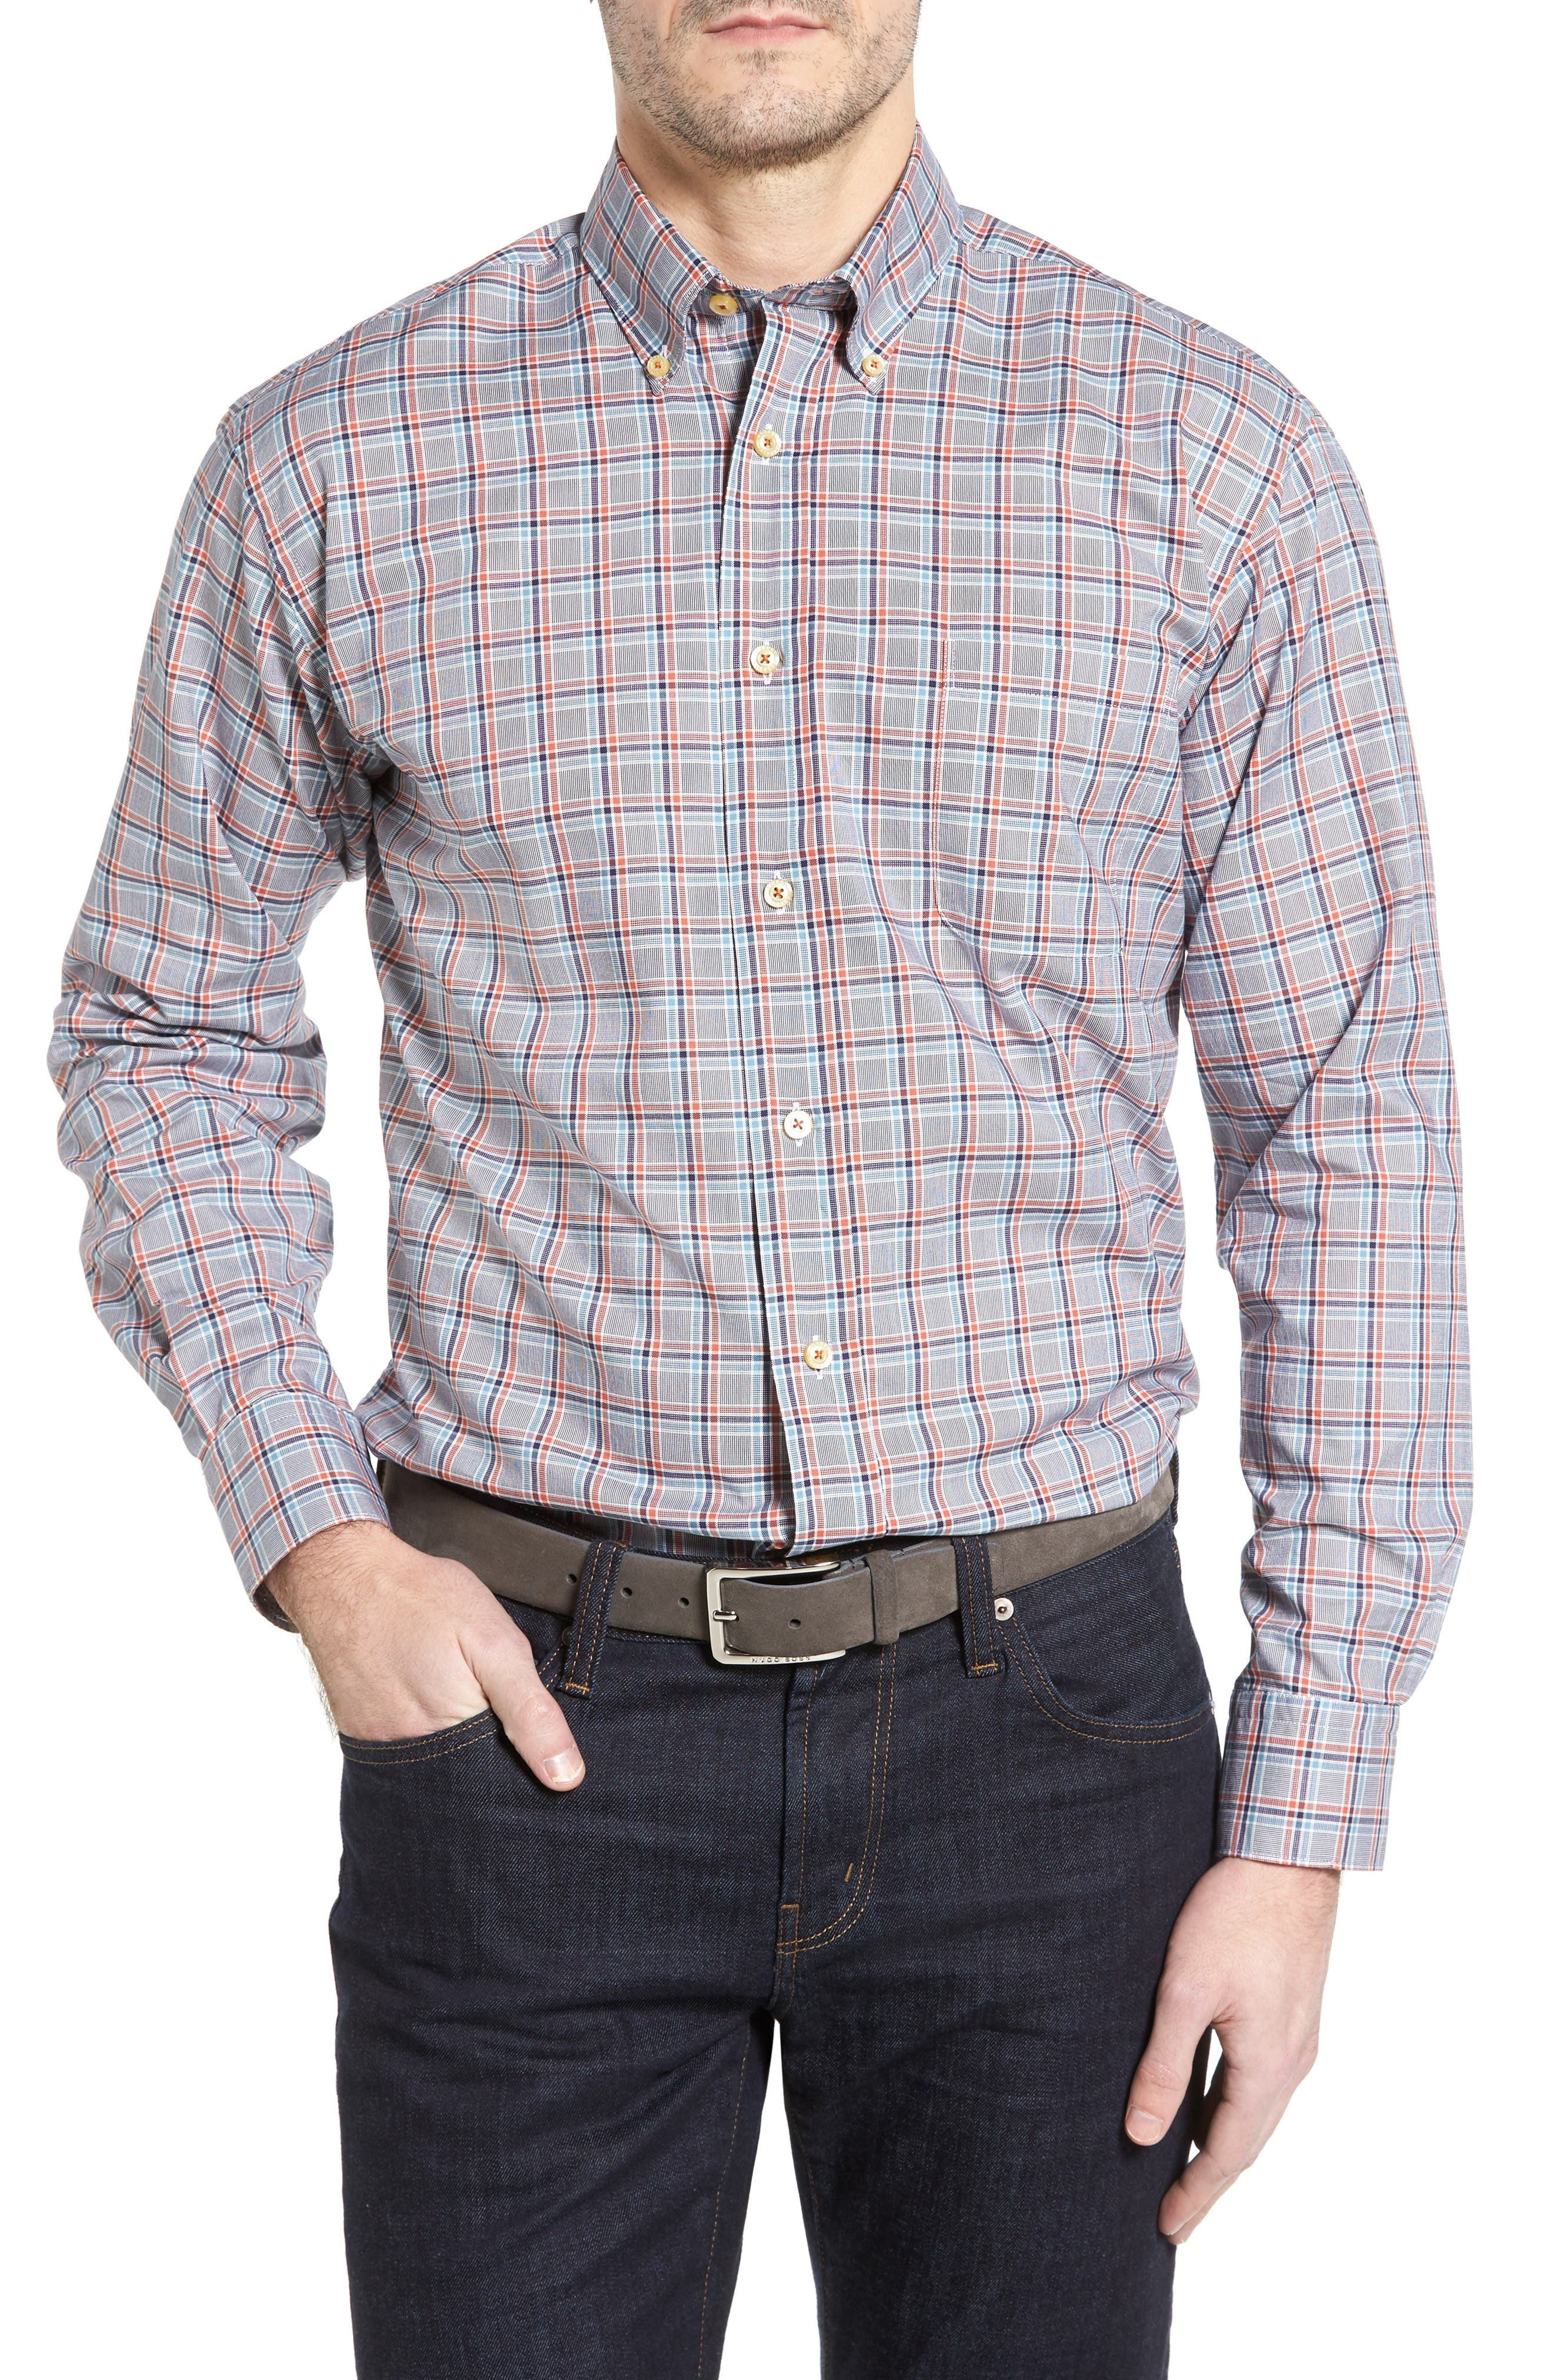 Anderson Classic Fit Plaid Oxford Sport Shirt,                         Main,                         color, Navy